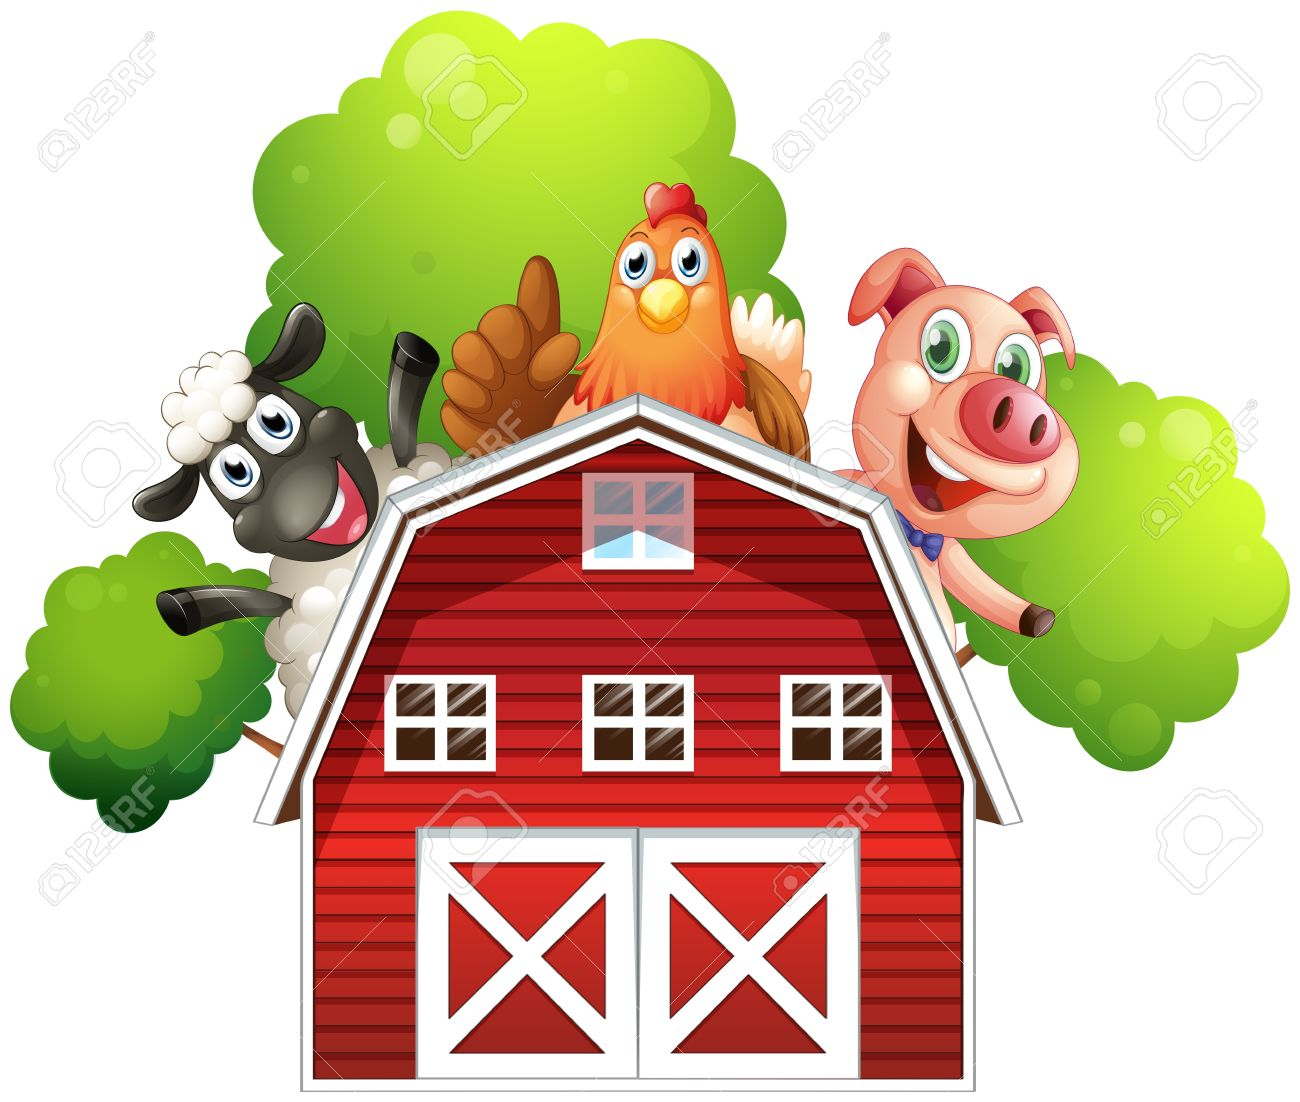 Illustration Of A Barn With Animals At The Rooftop On White Background Stock Vector